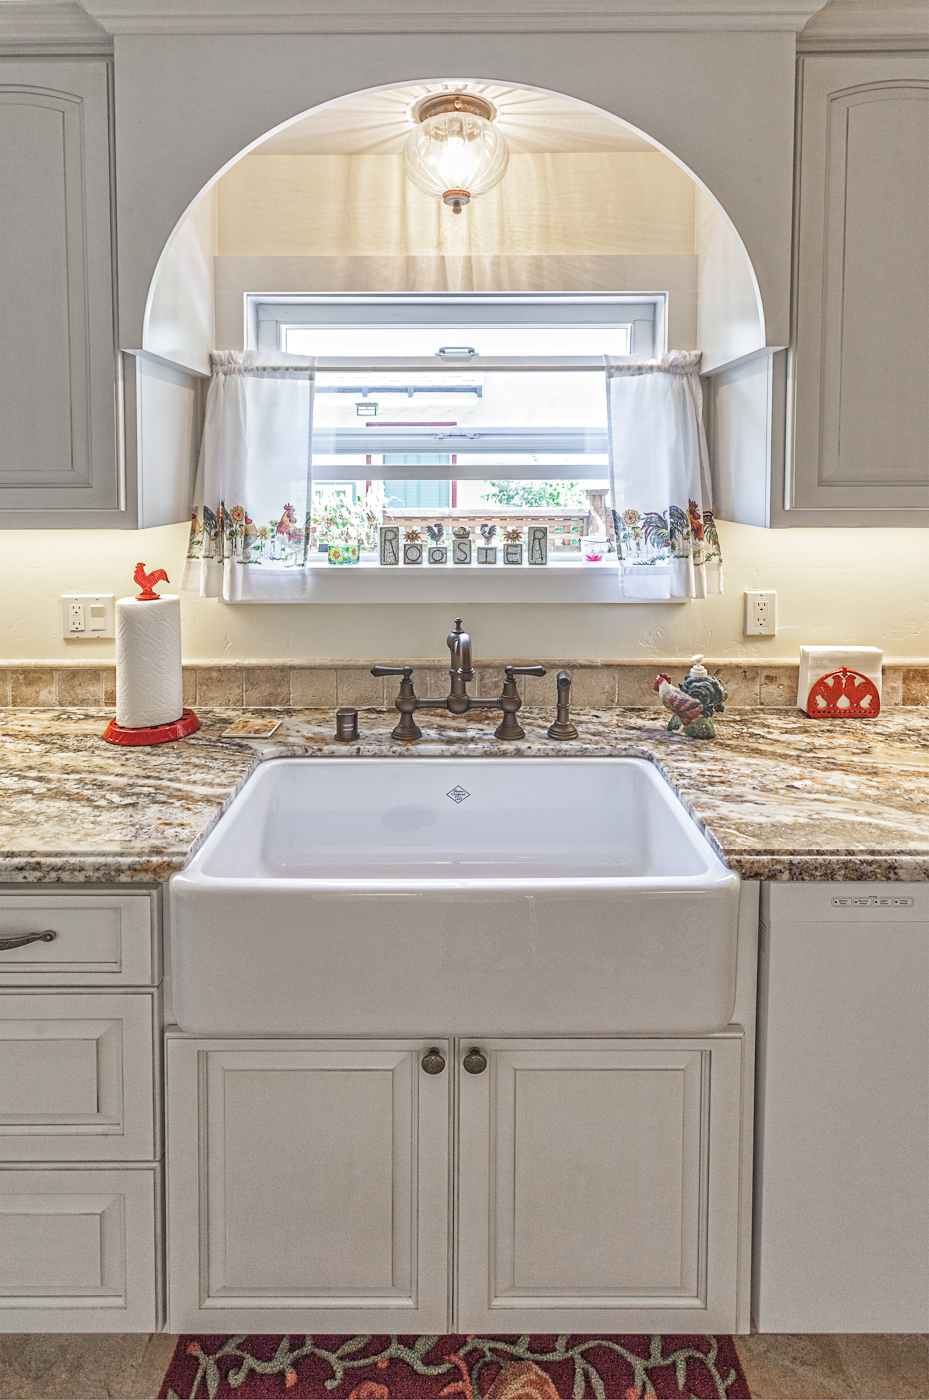 kitchen case study white country cabinets rohl kitchen faucets Rohl Perrin Rowe Bridge faucet with spray handle